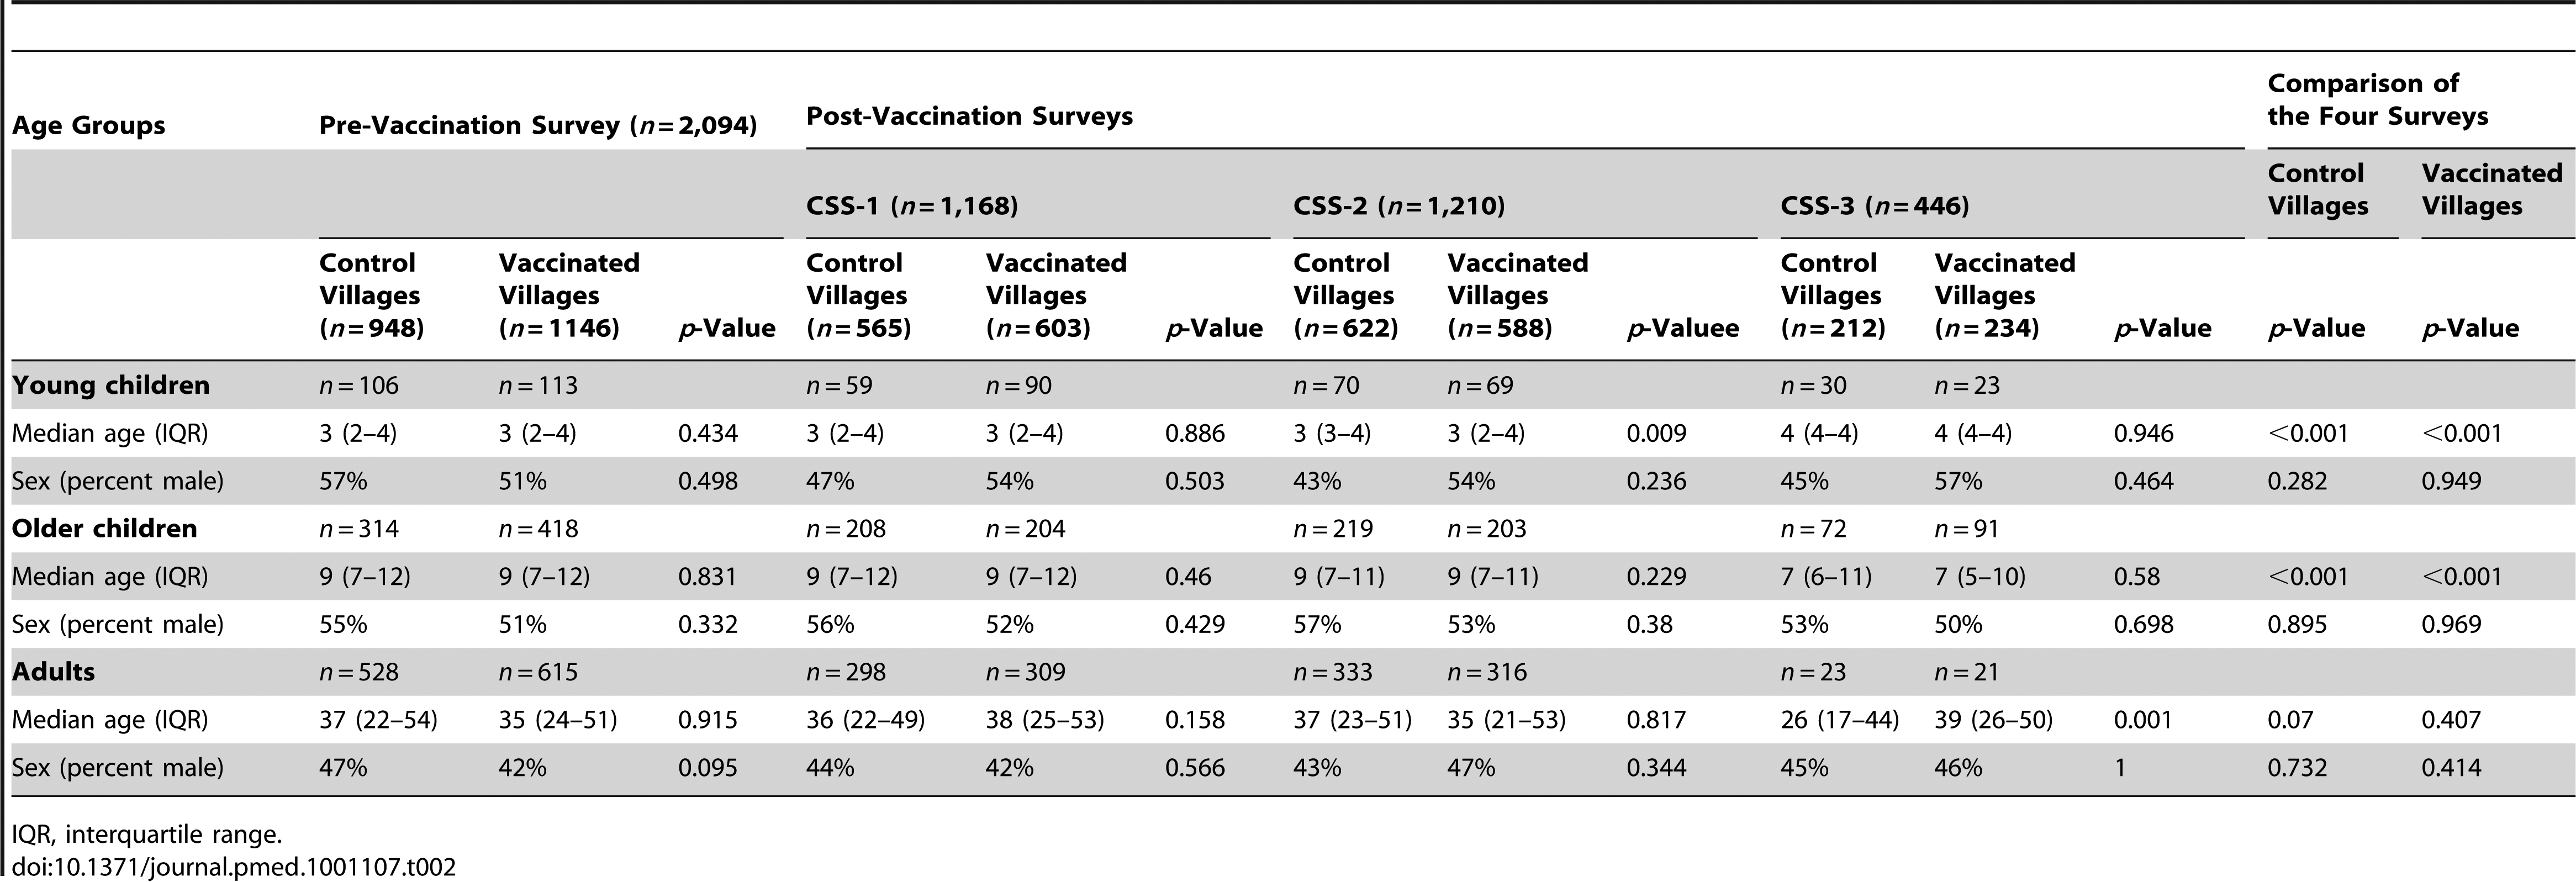 Age and sex of individuals studied in vaccinated and control villages in each of the CSSs.